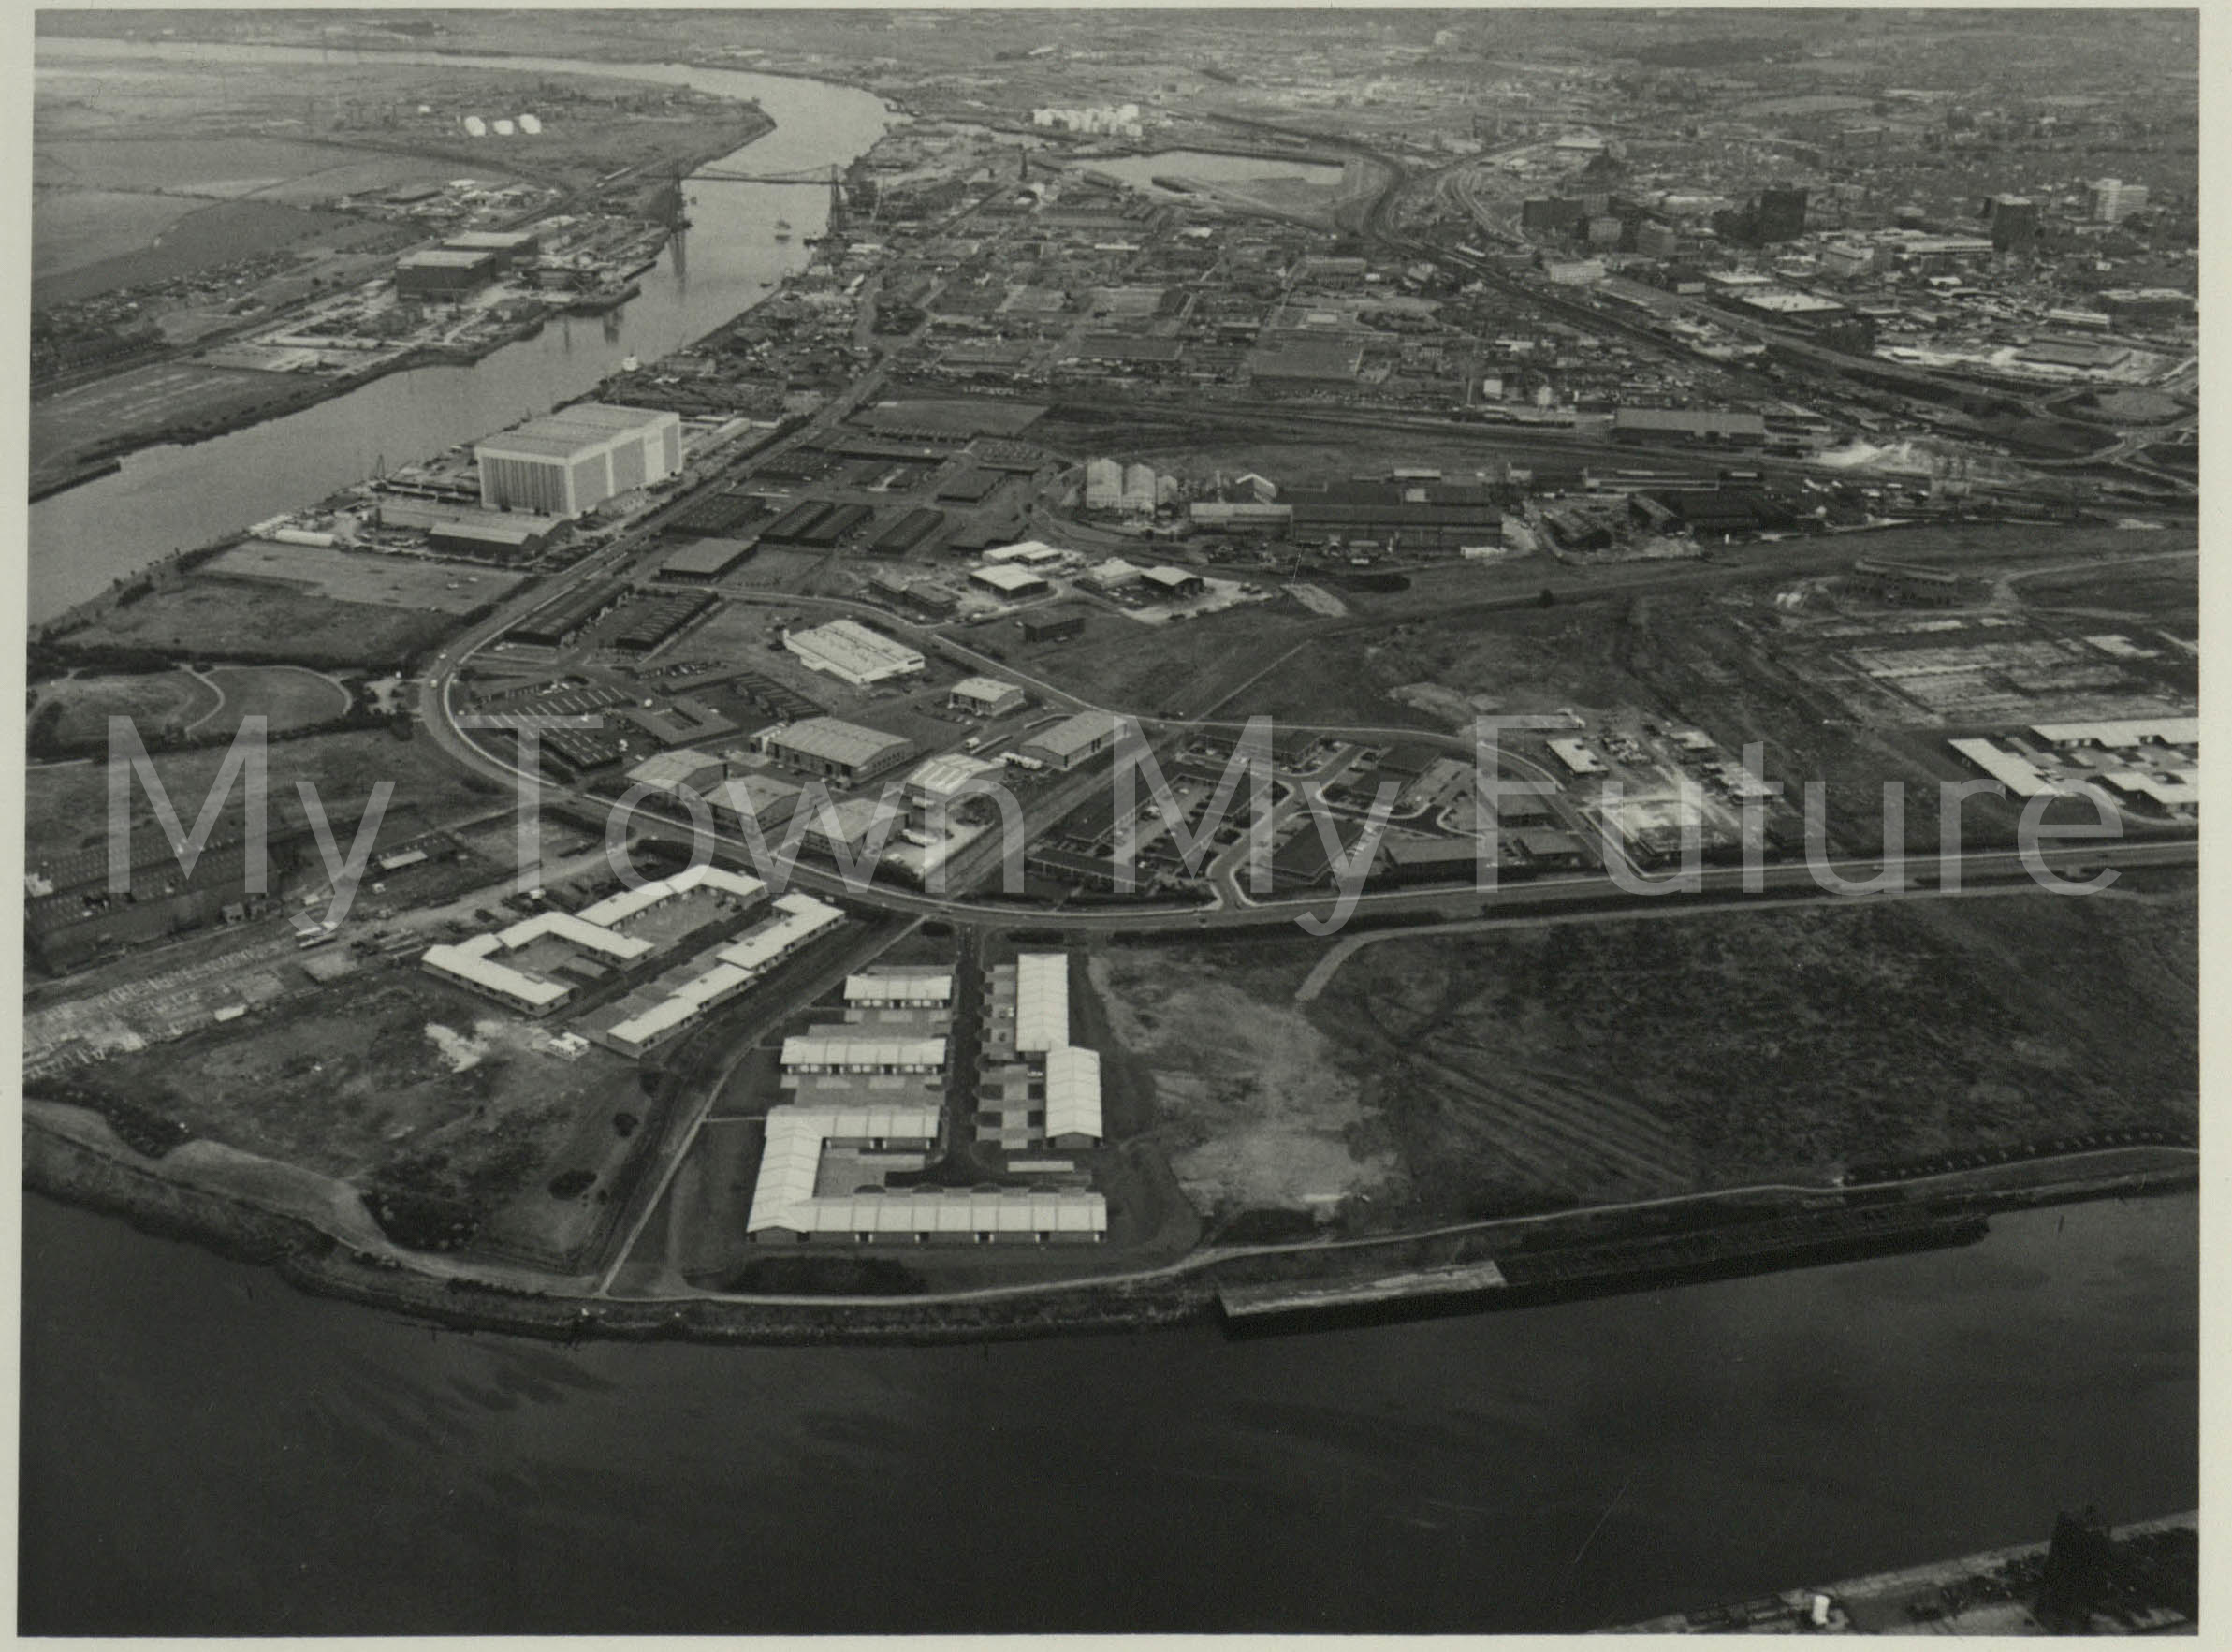 Middlesbrough River Tees - Department of Planning - Cleveland County Council